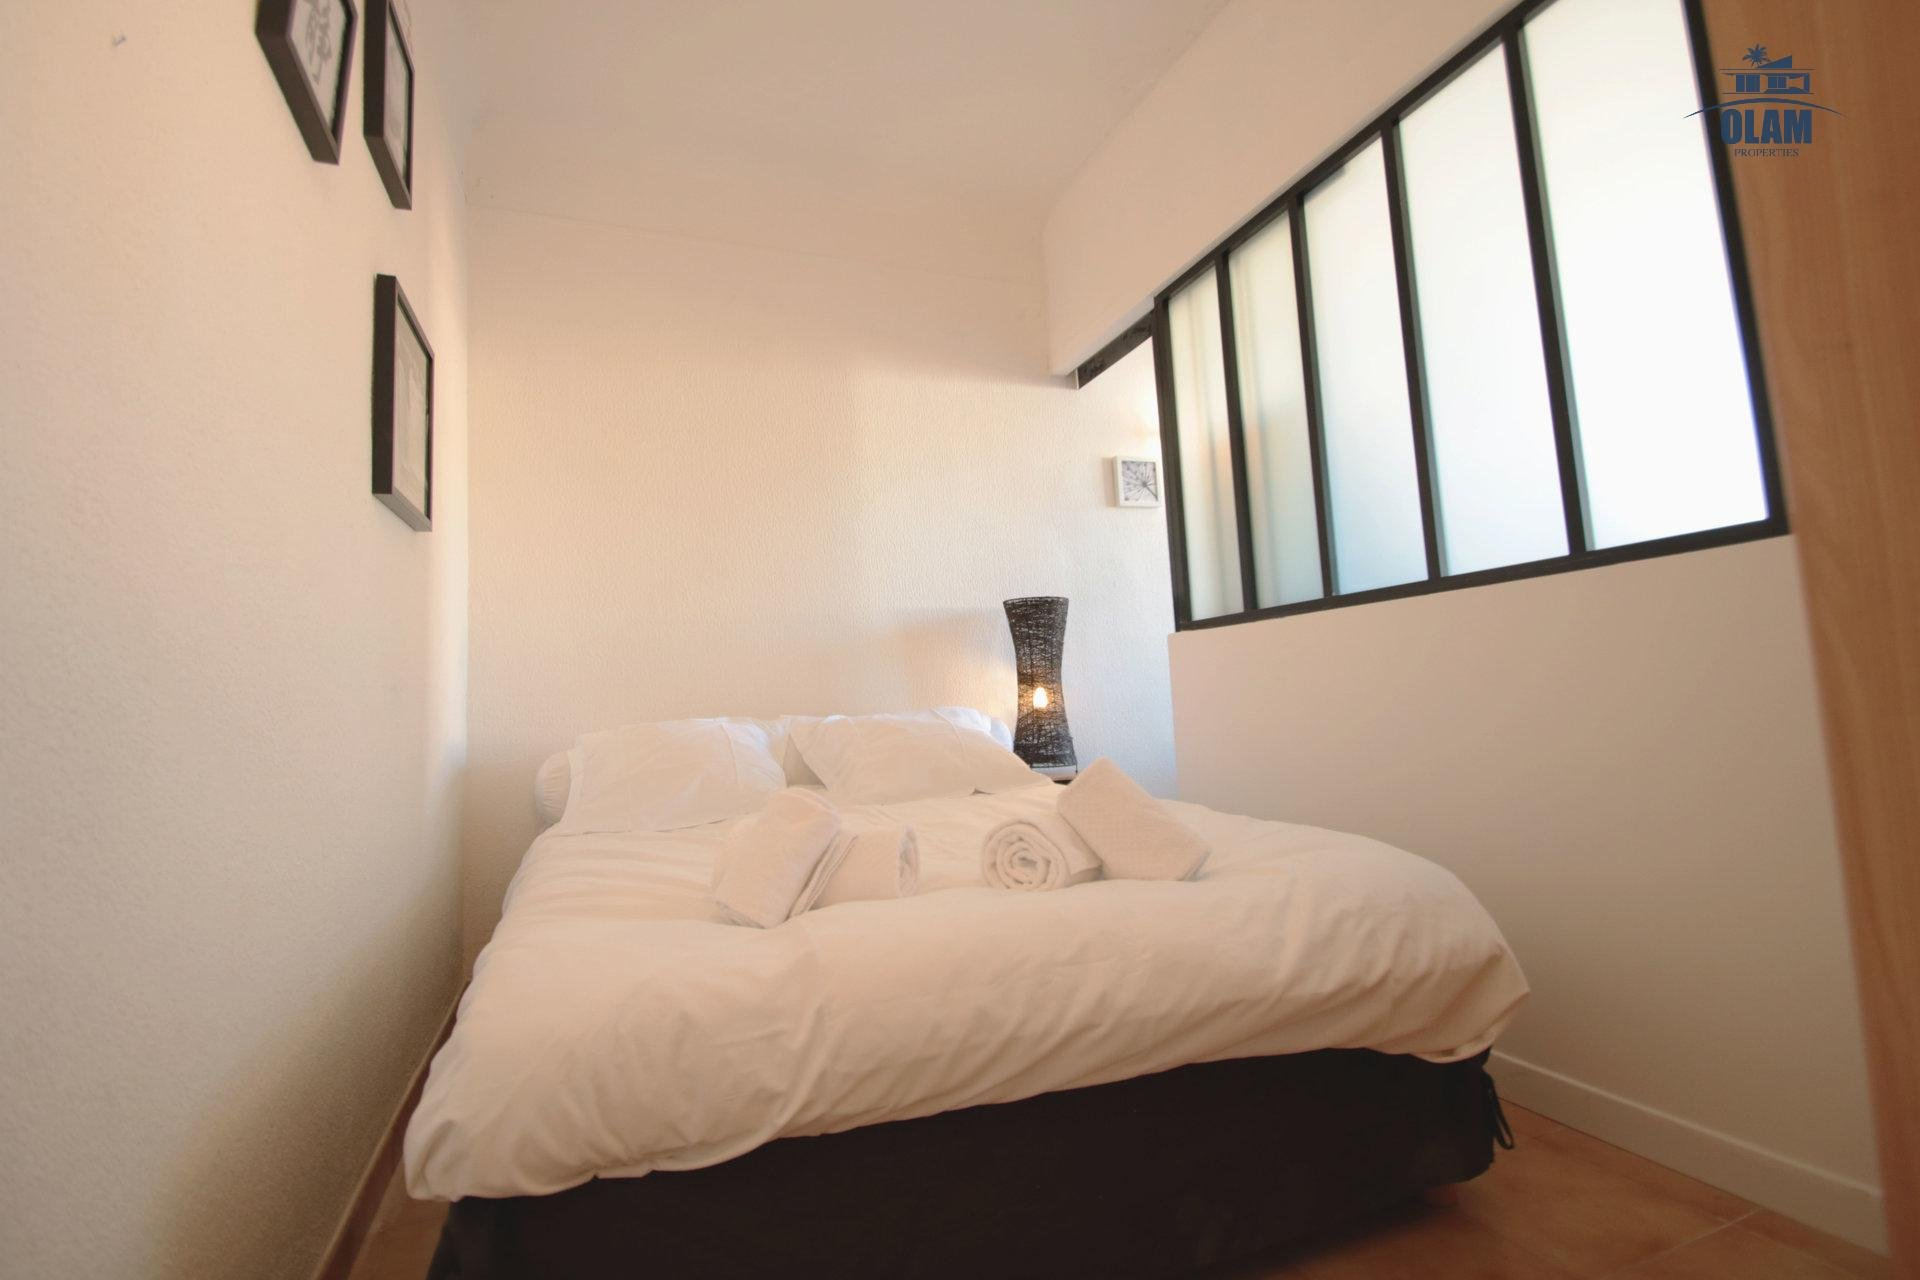 Bedroom, queensize bed, Cannes, French Riviera, Croisette